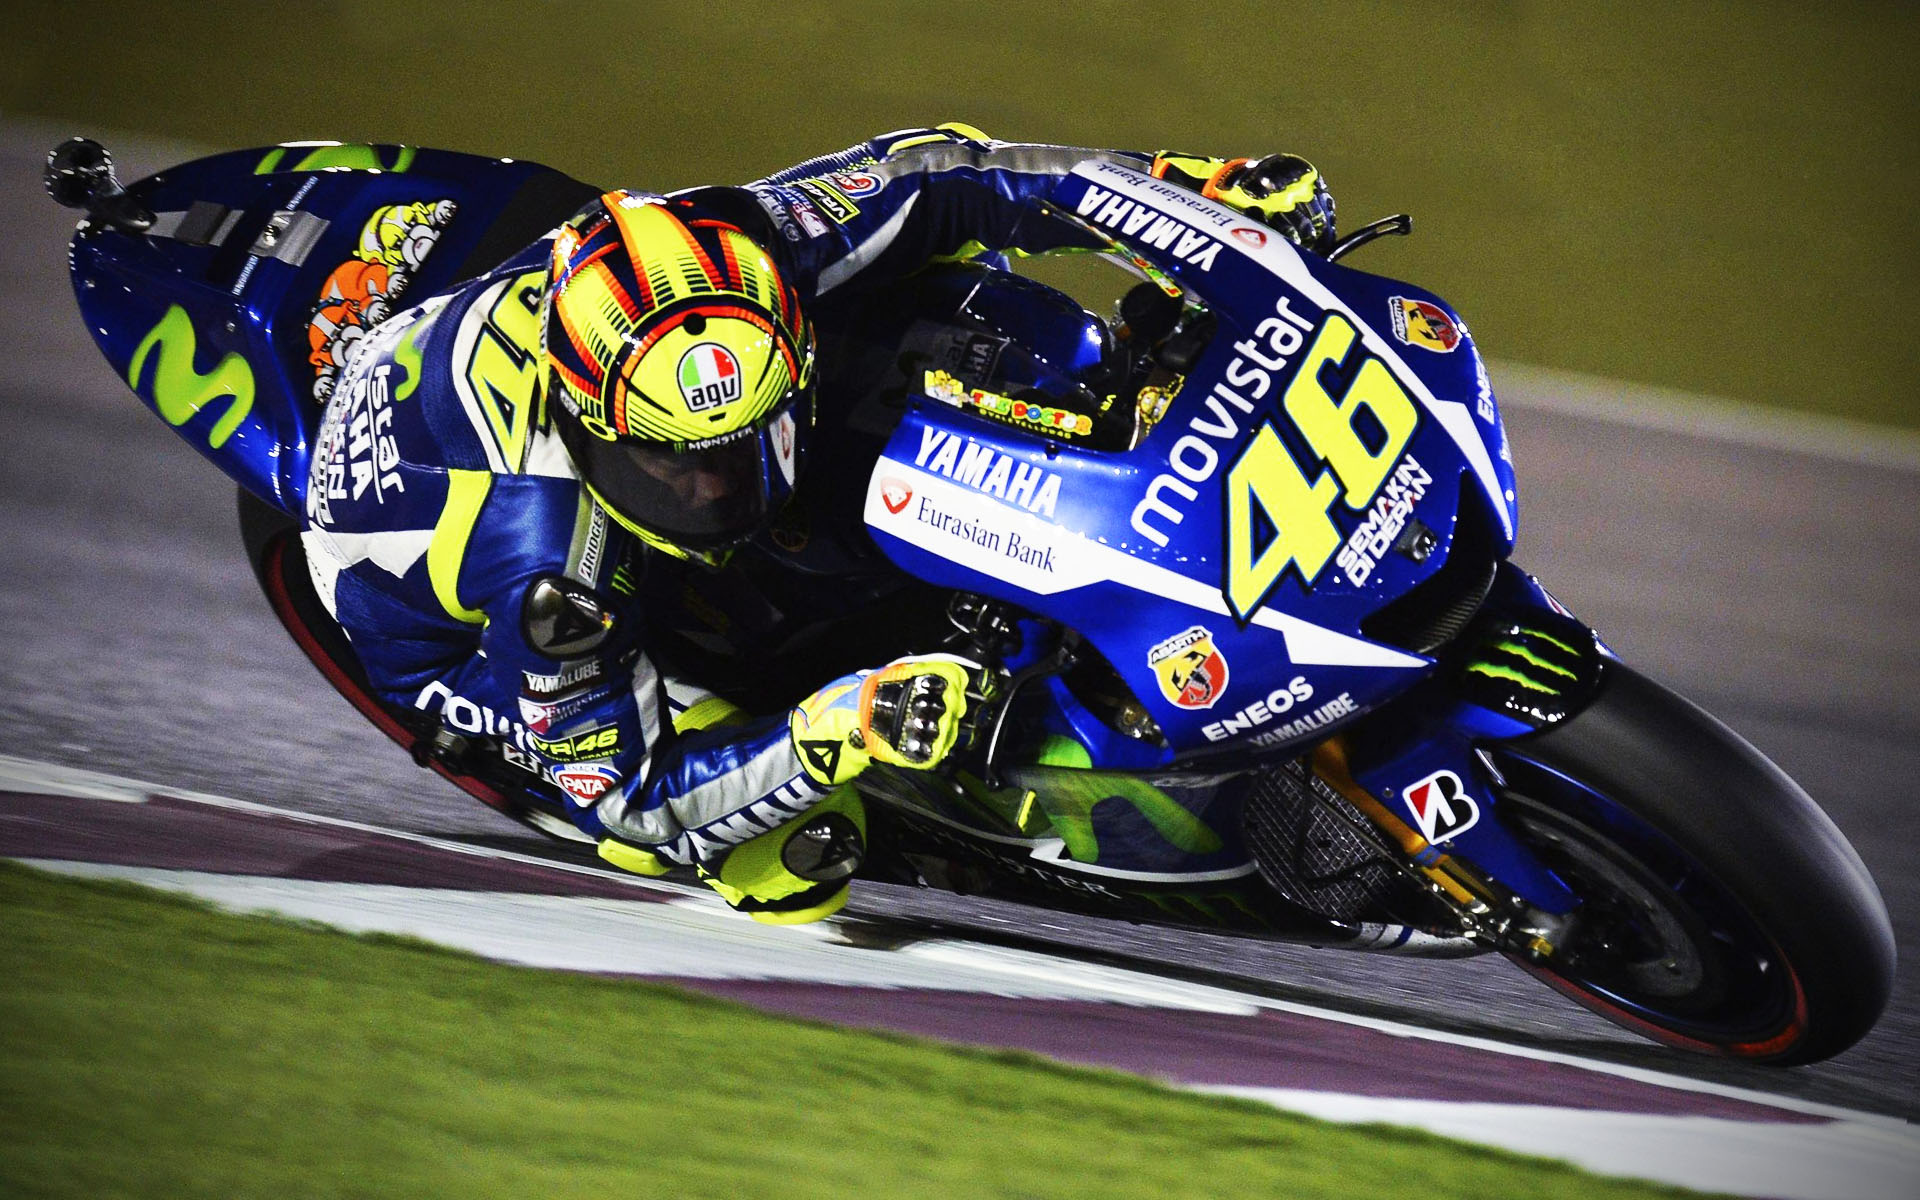 Valentino Rossi Wallpapers 1920x1200